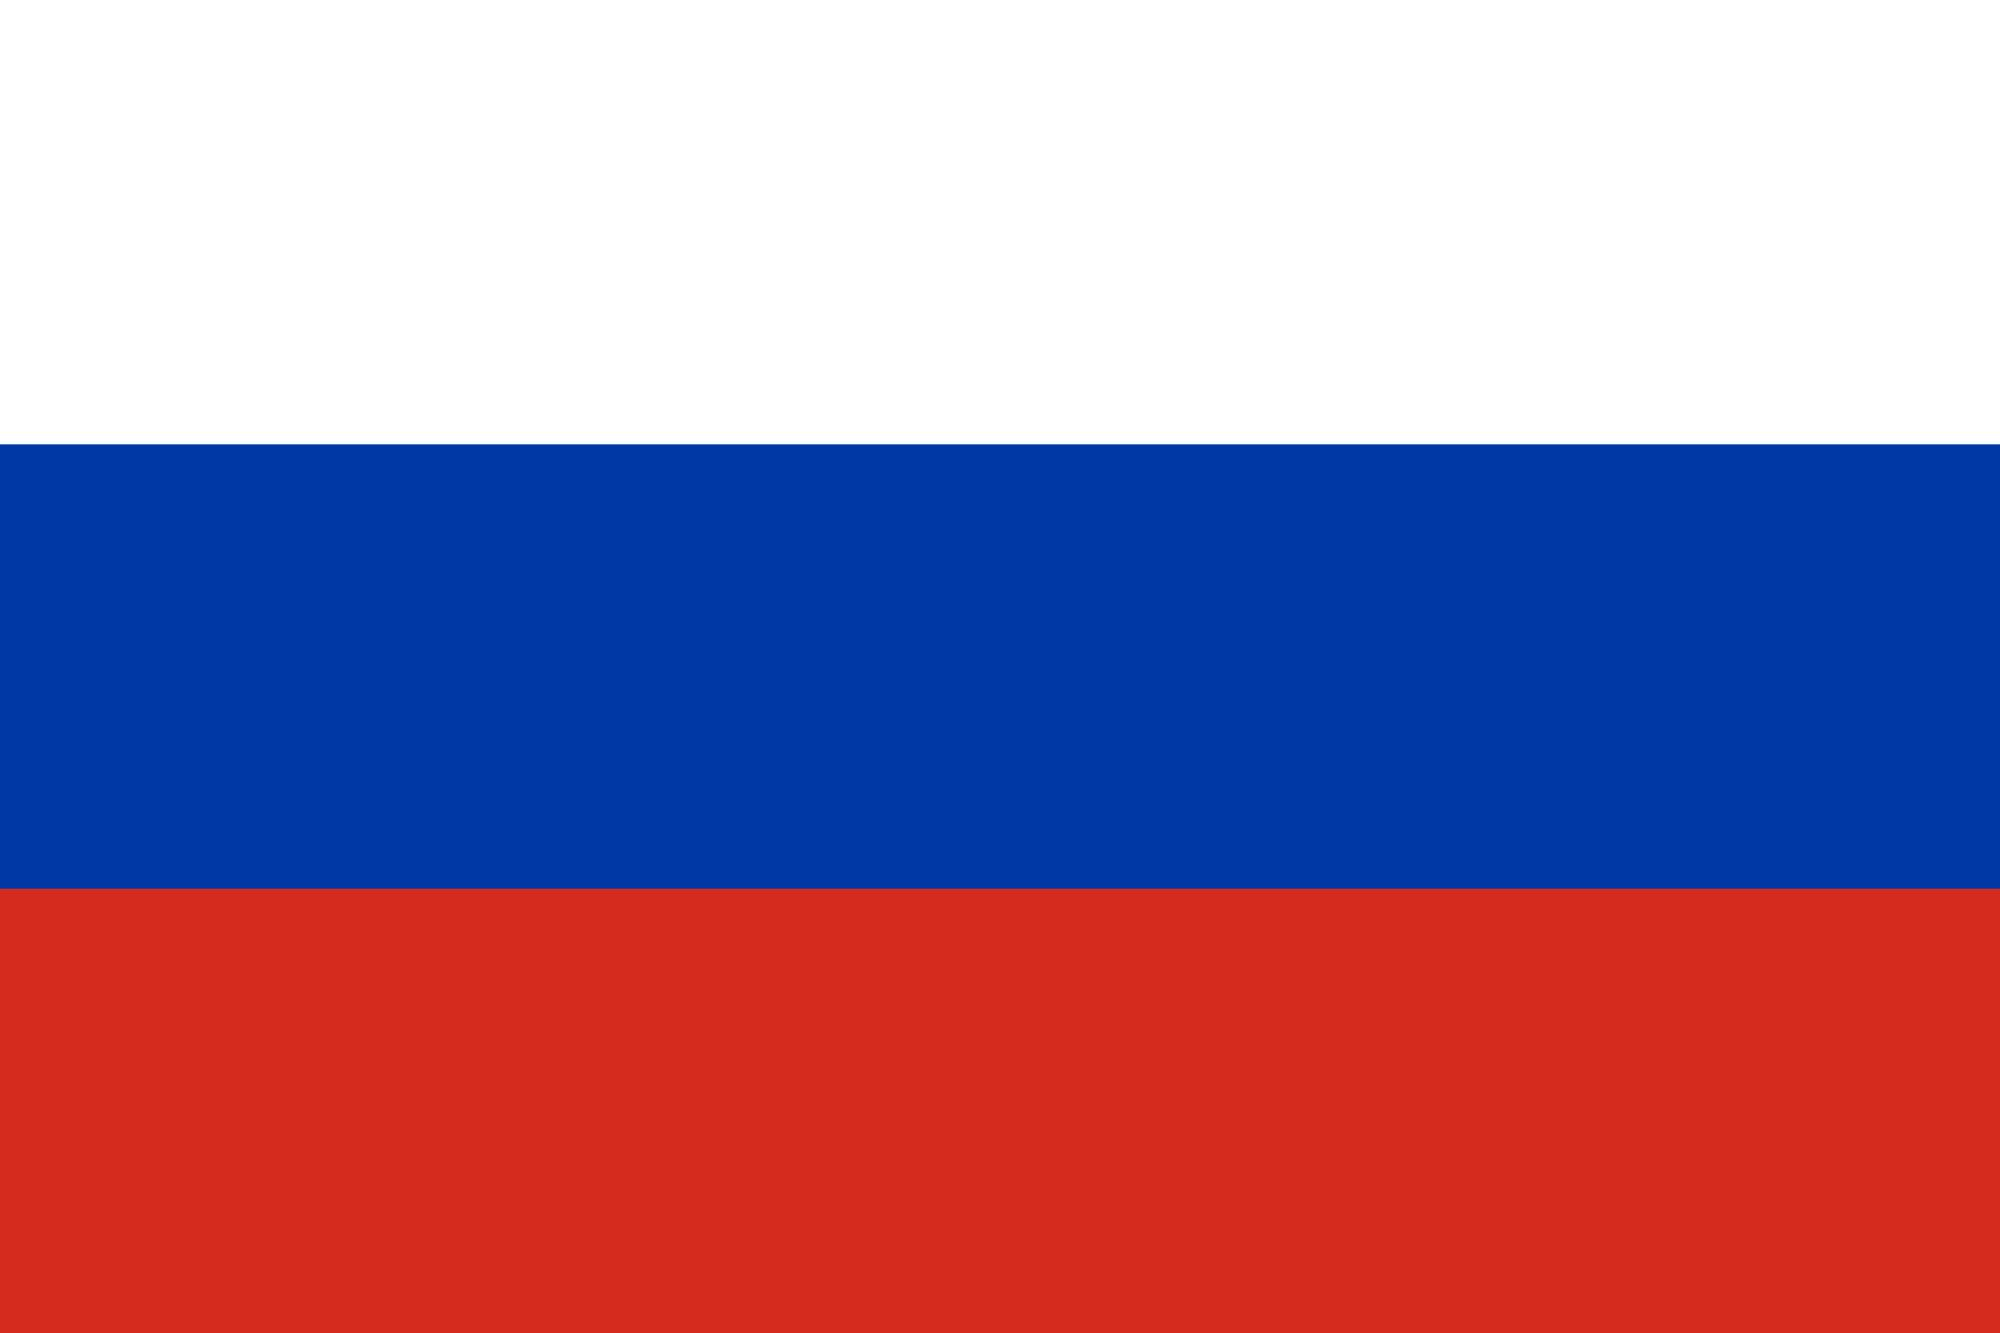 Russia Flag Live Wallpaper for Android - APK Download